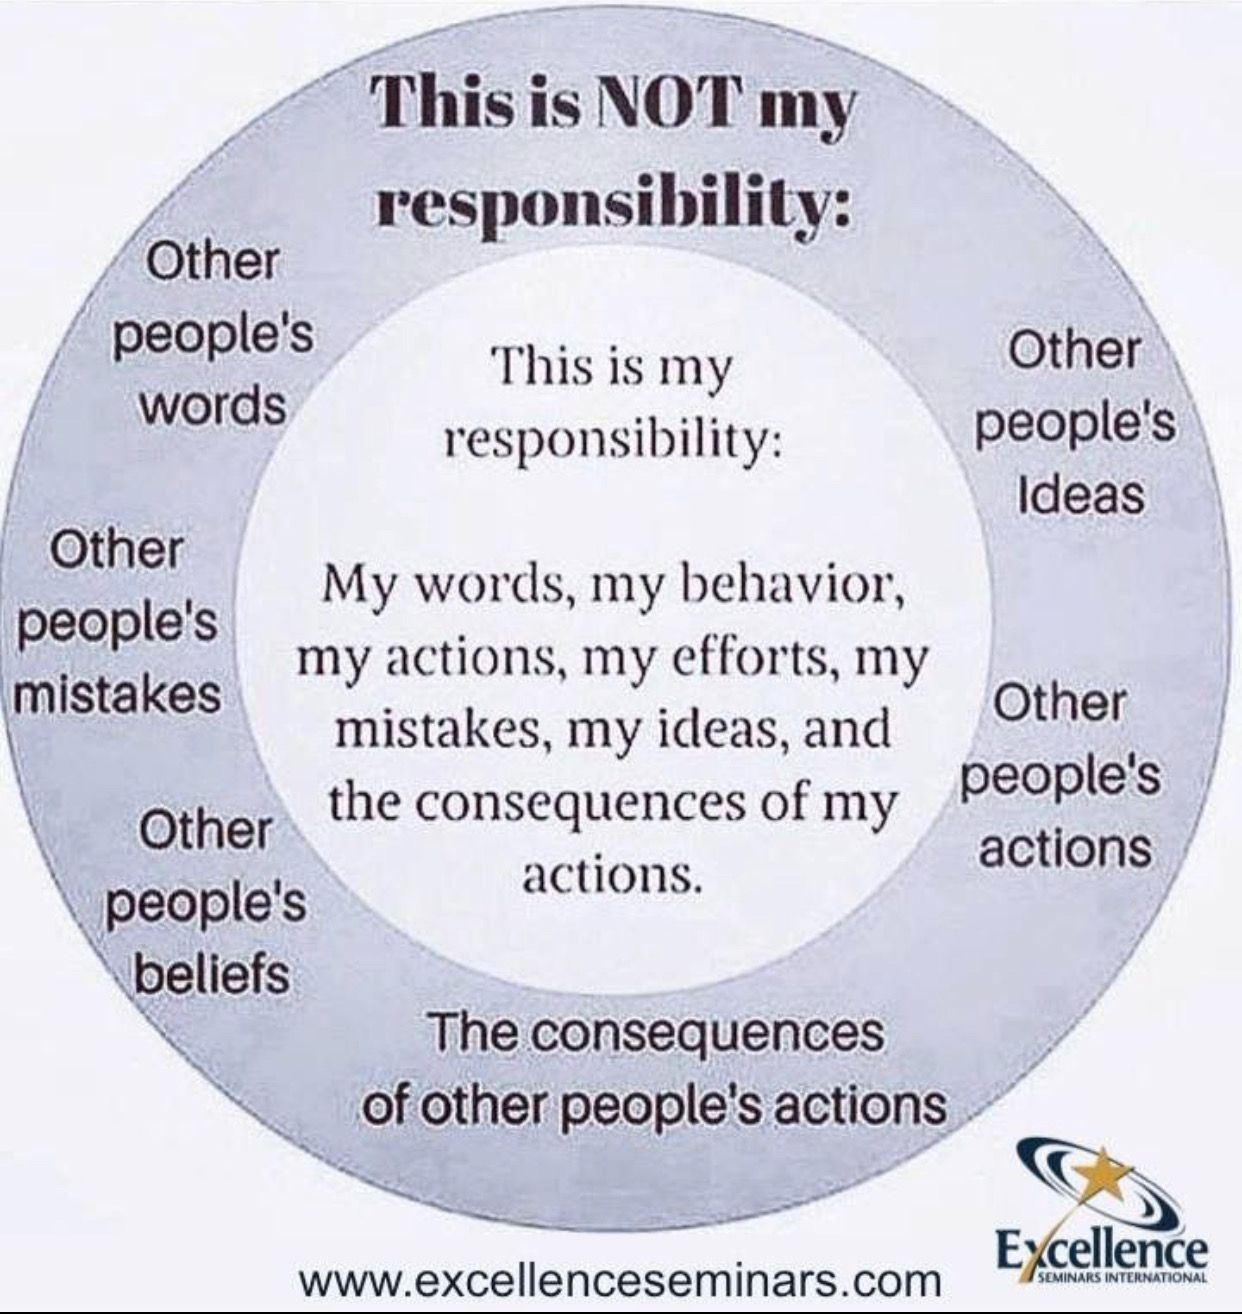 Circle Of Concern Responsibility In My Control